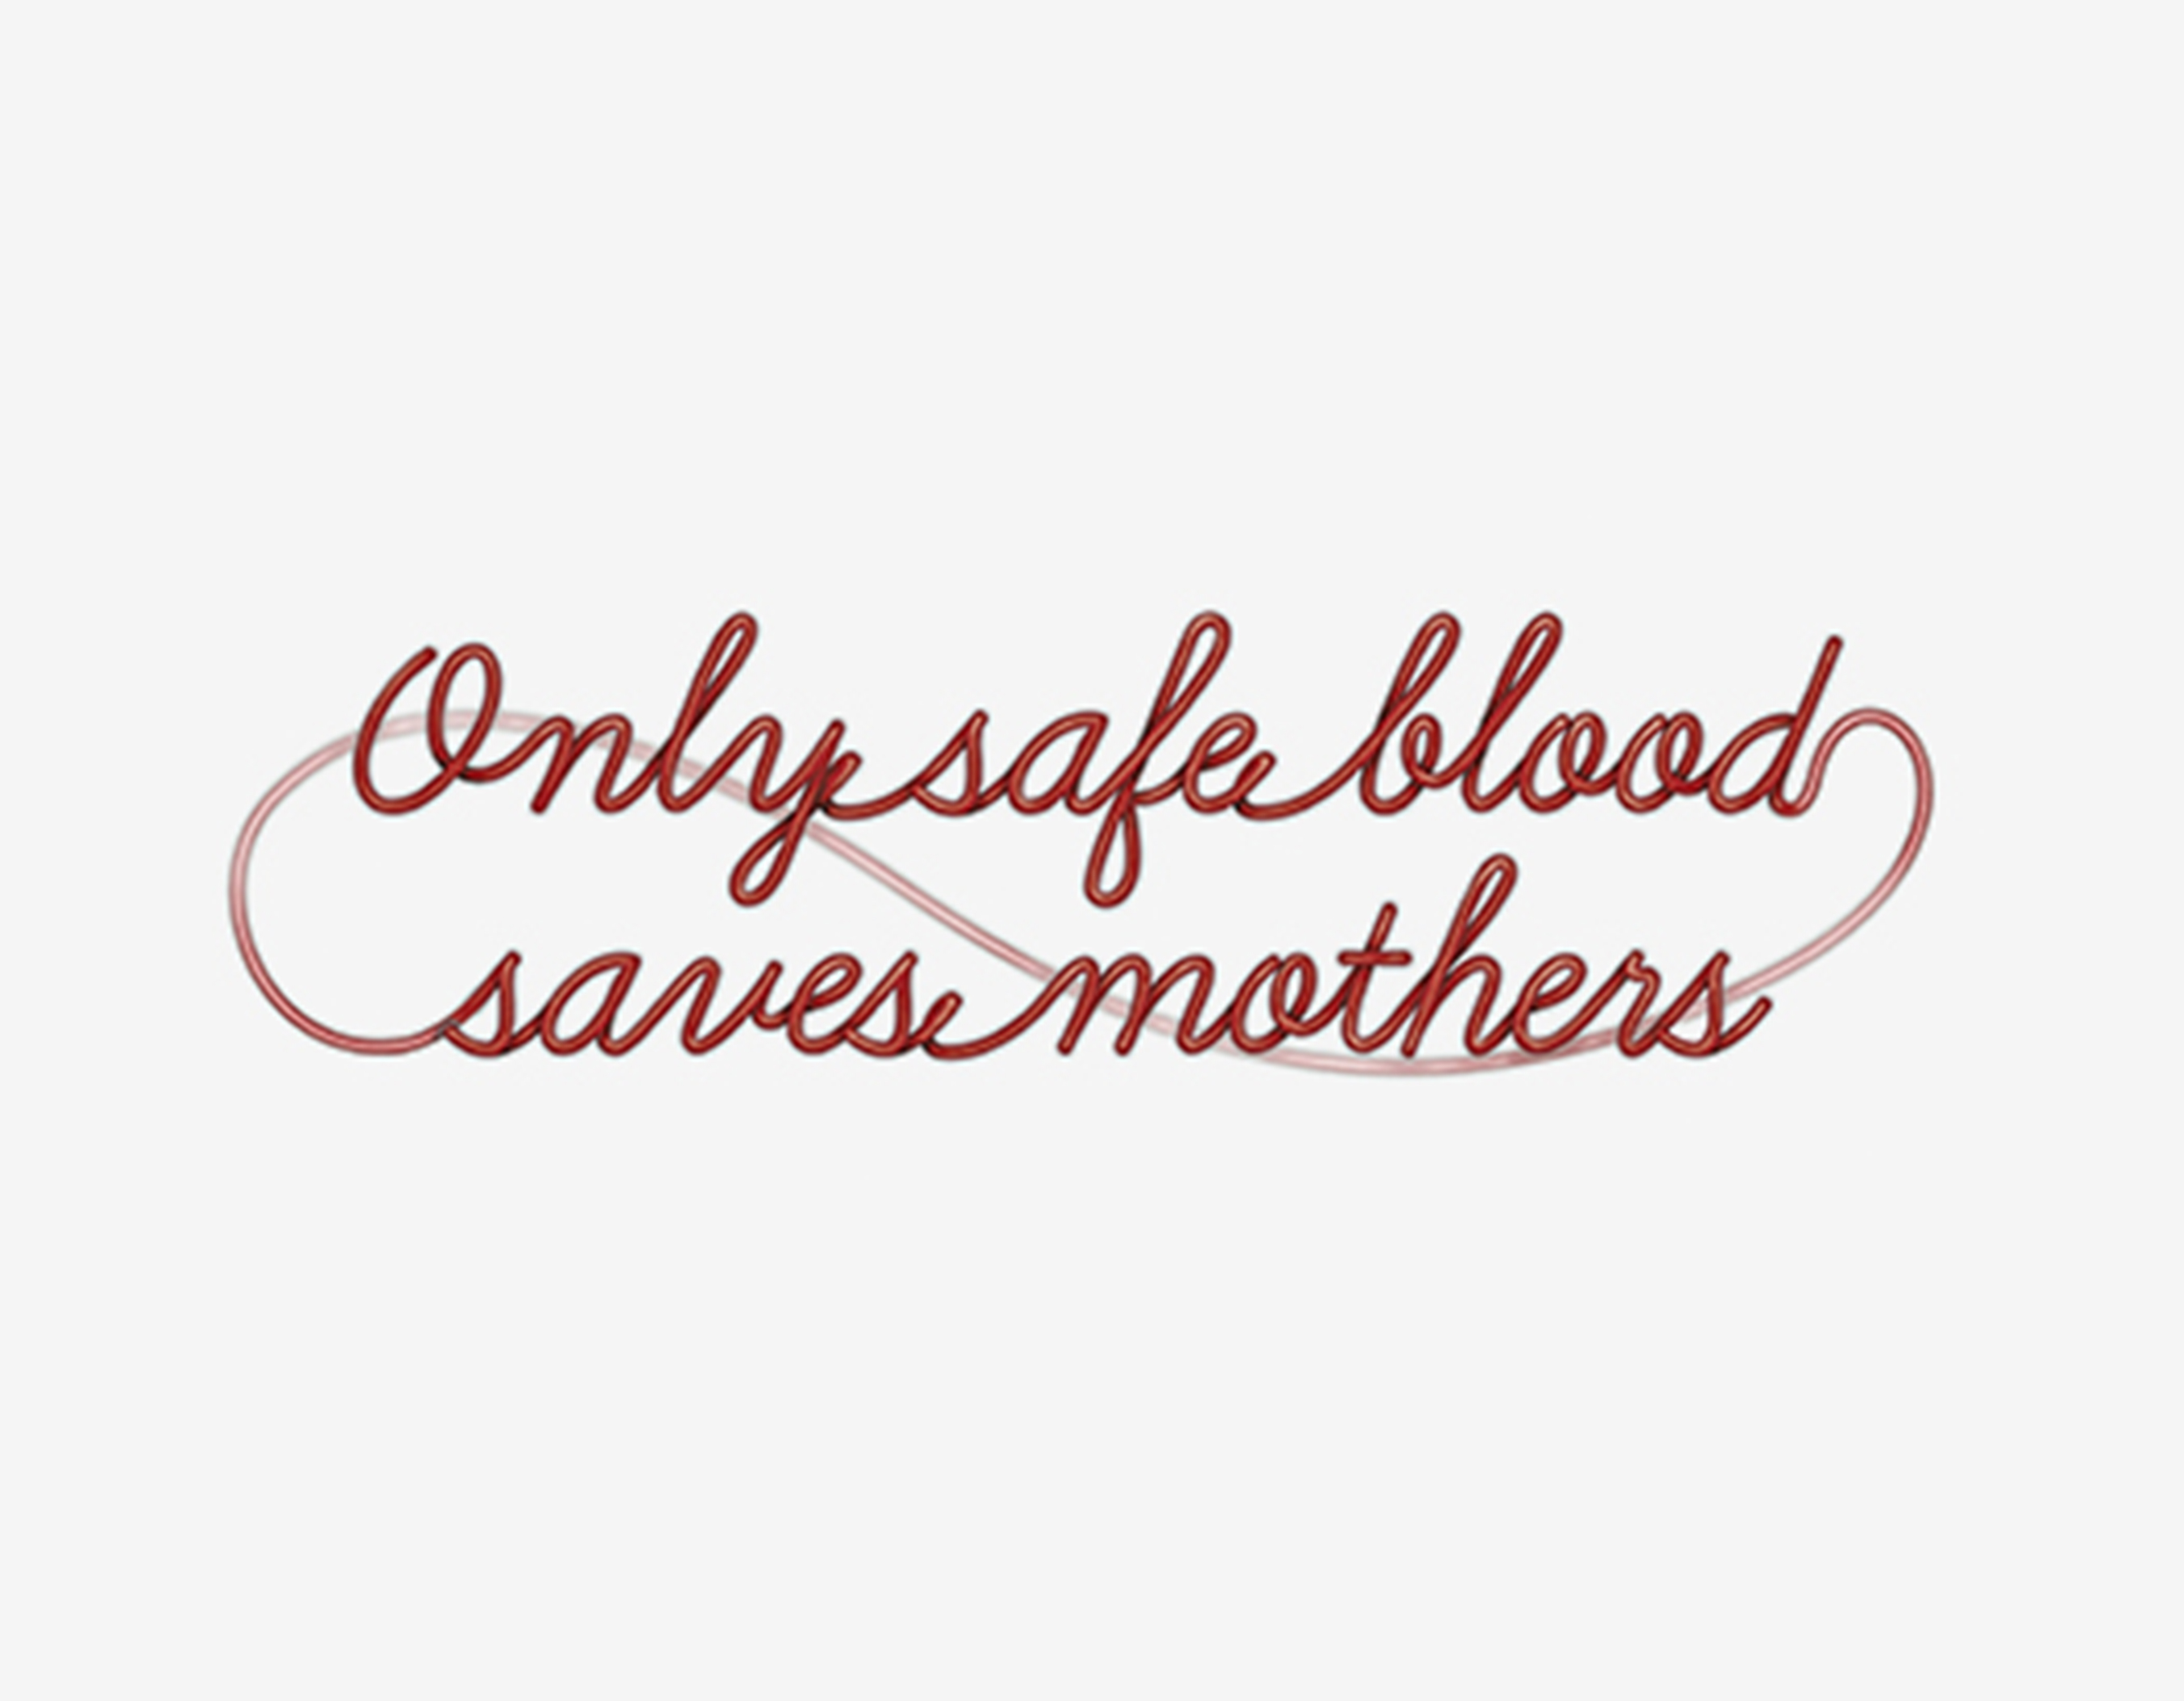 Ony safe blood saver mothers